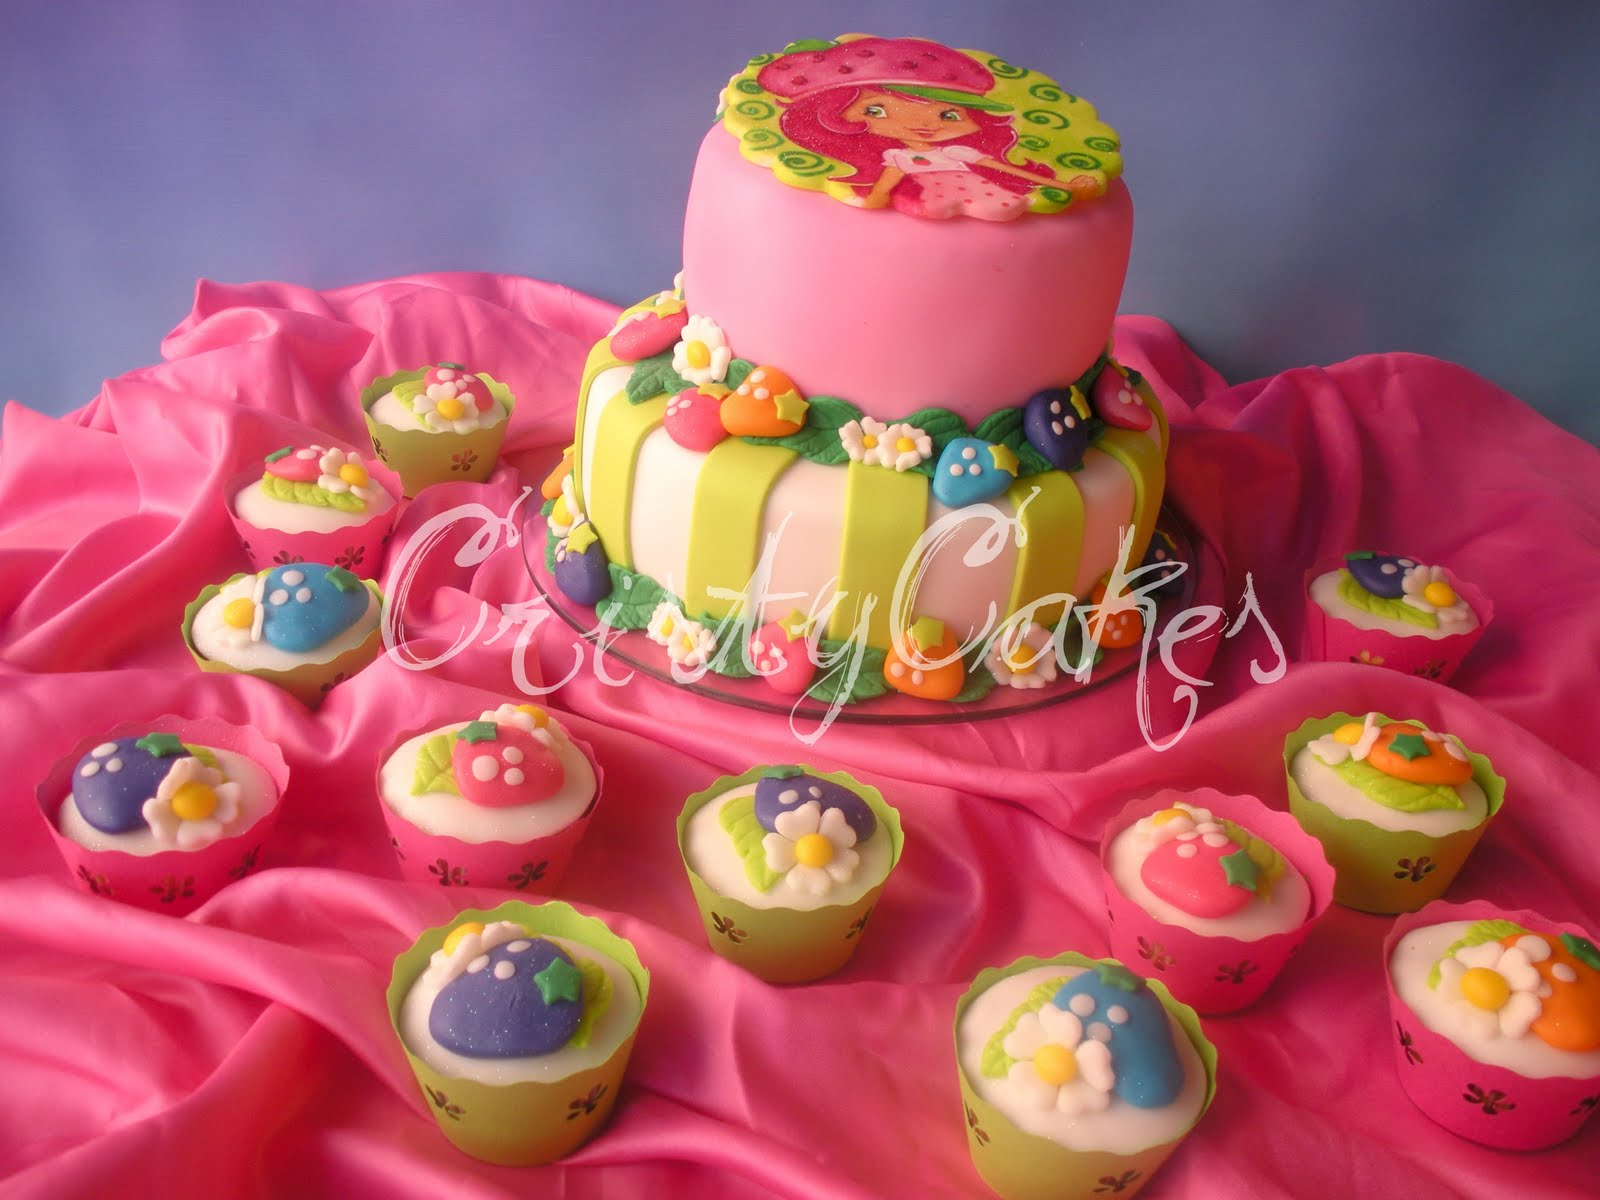 Cristy's Cakes: 07/